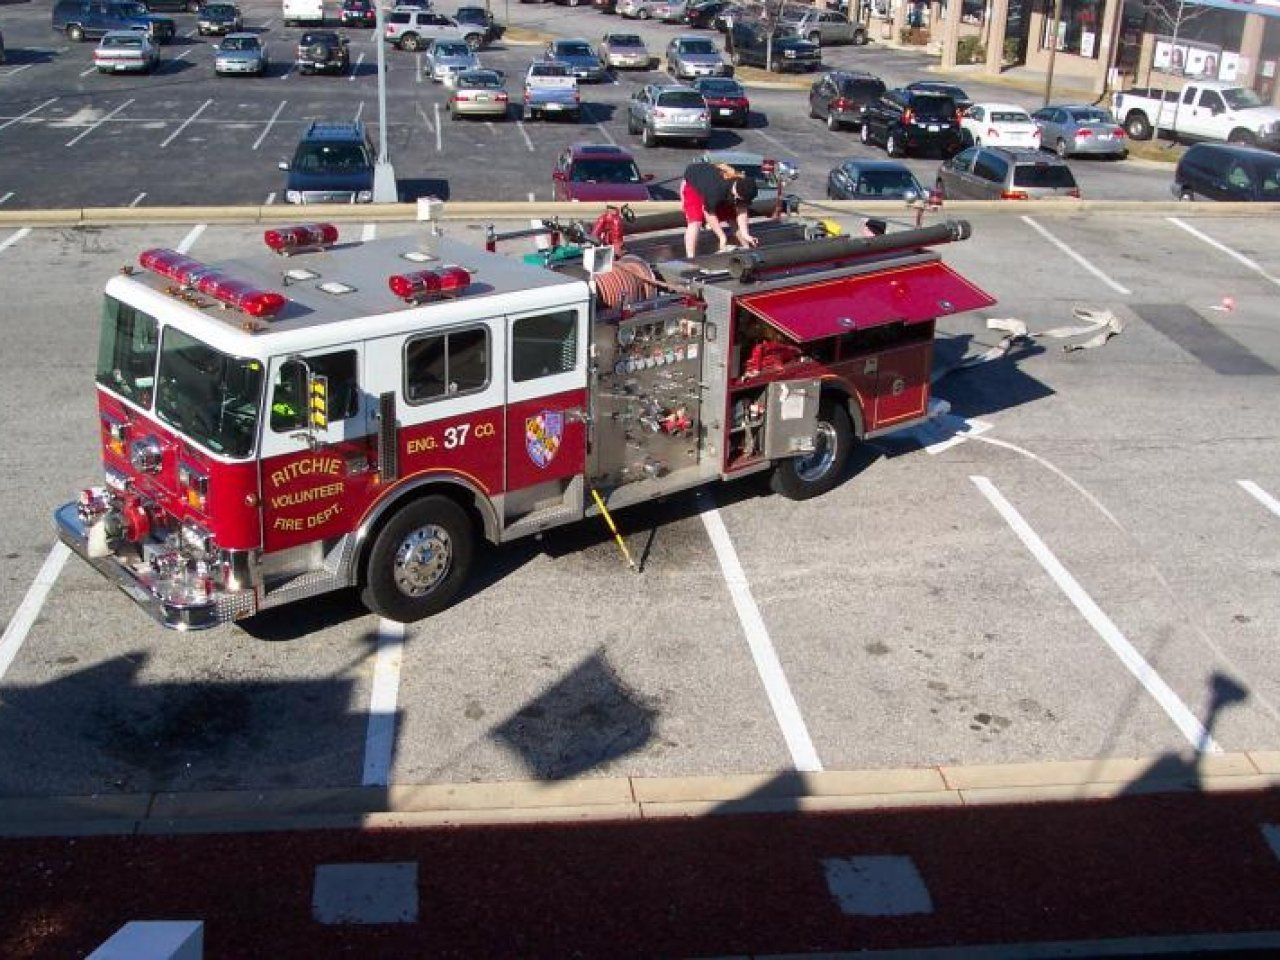 Ritchie Fire Department – Ritchie, MD